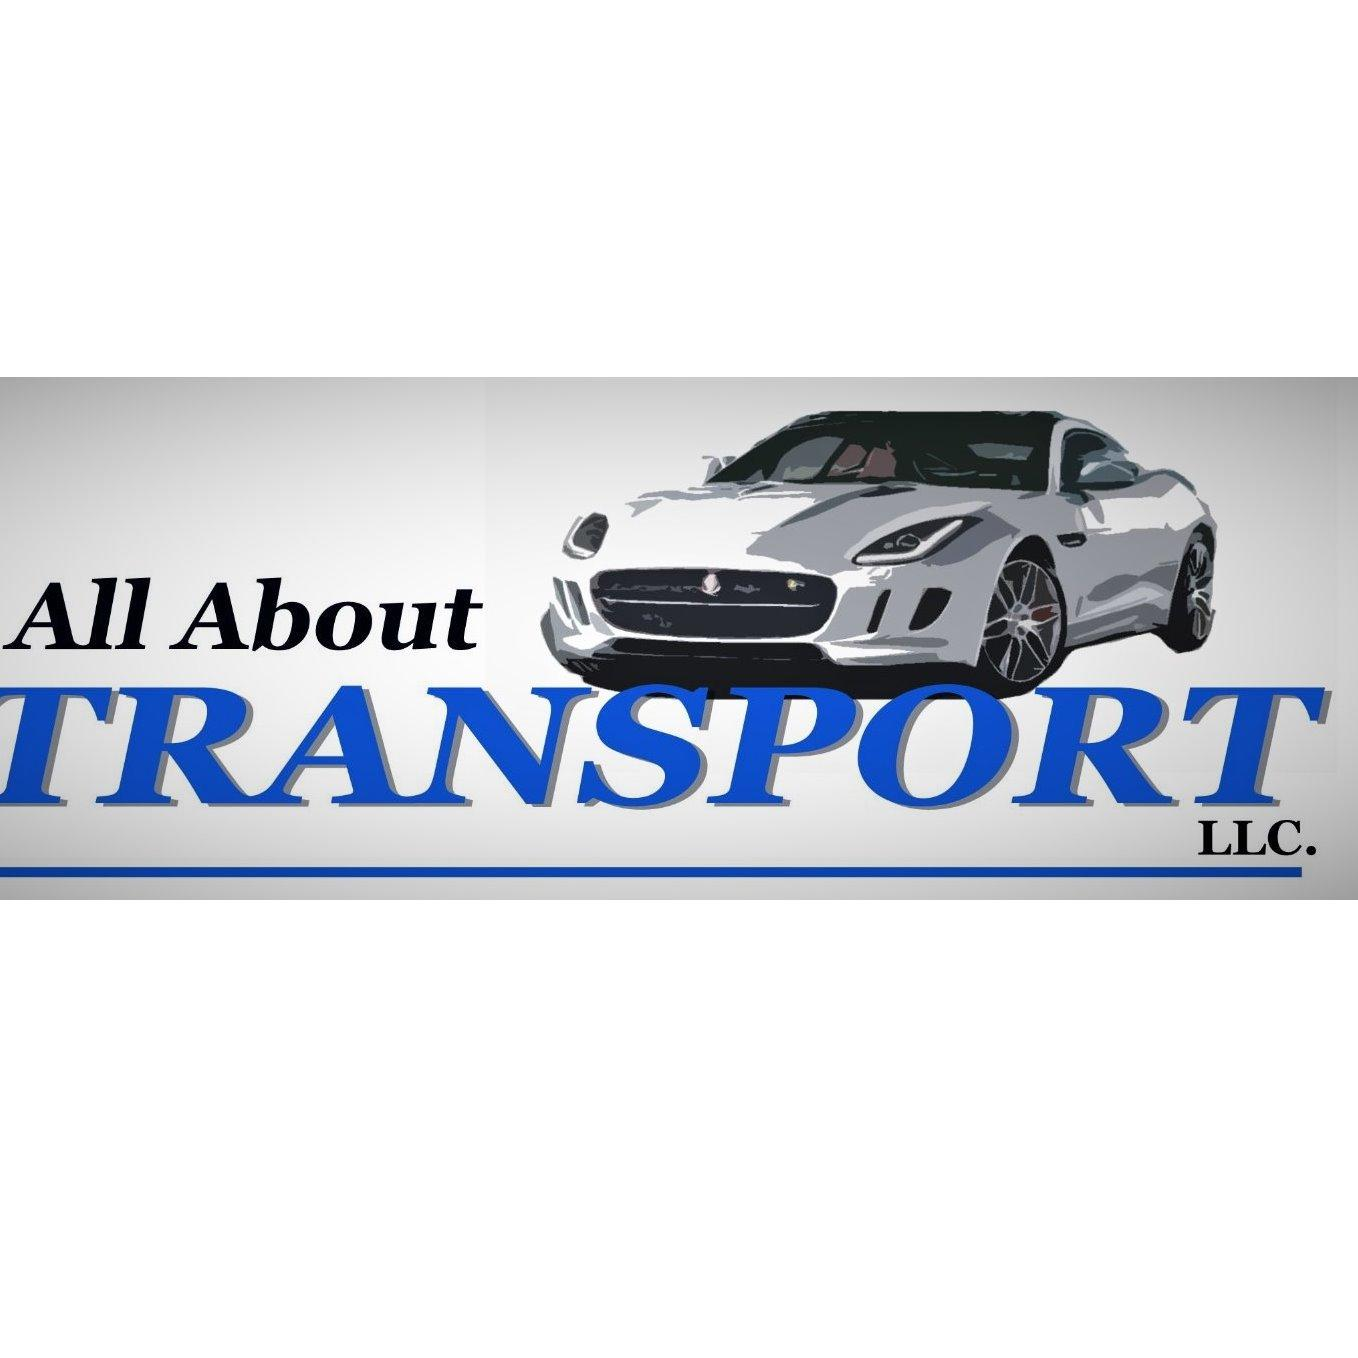 ALL ABOUT TRANSPORT LLC